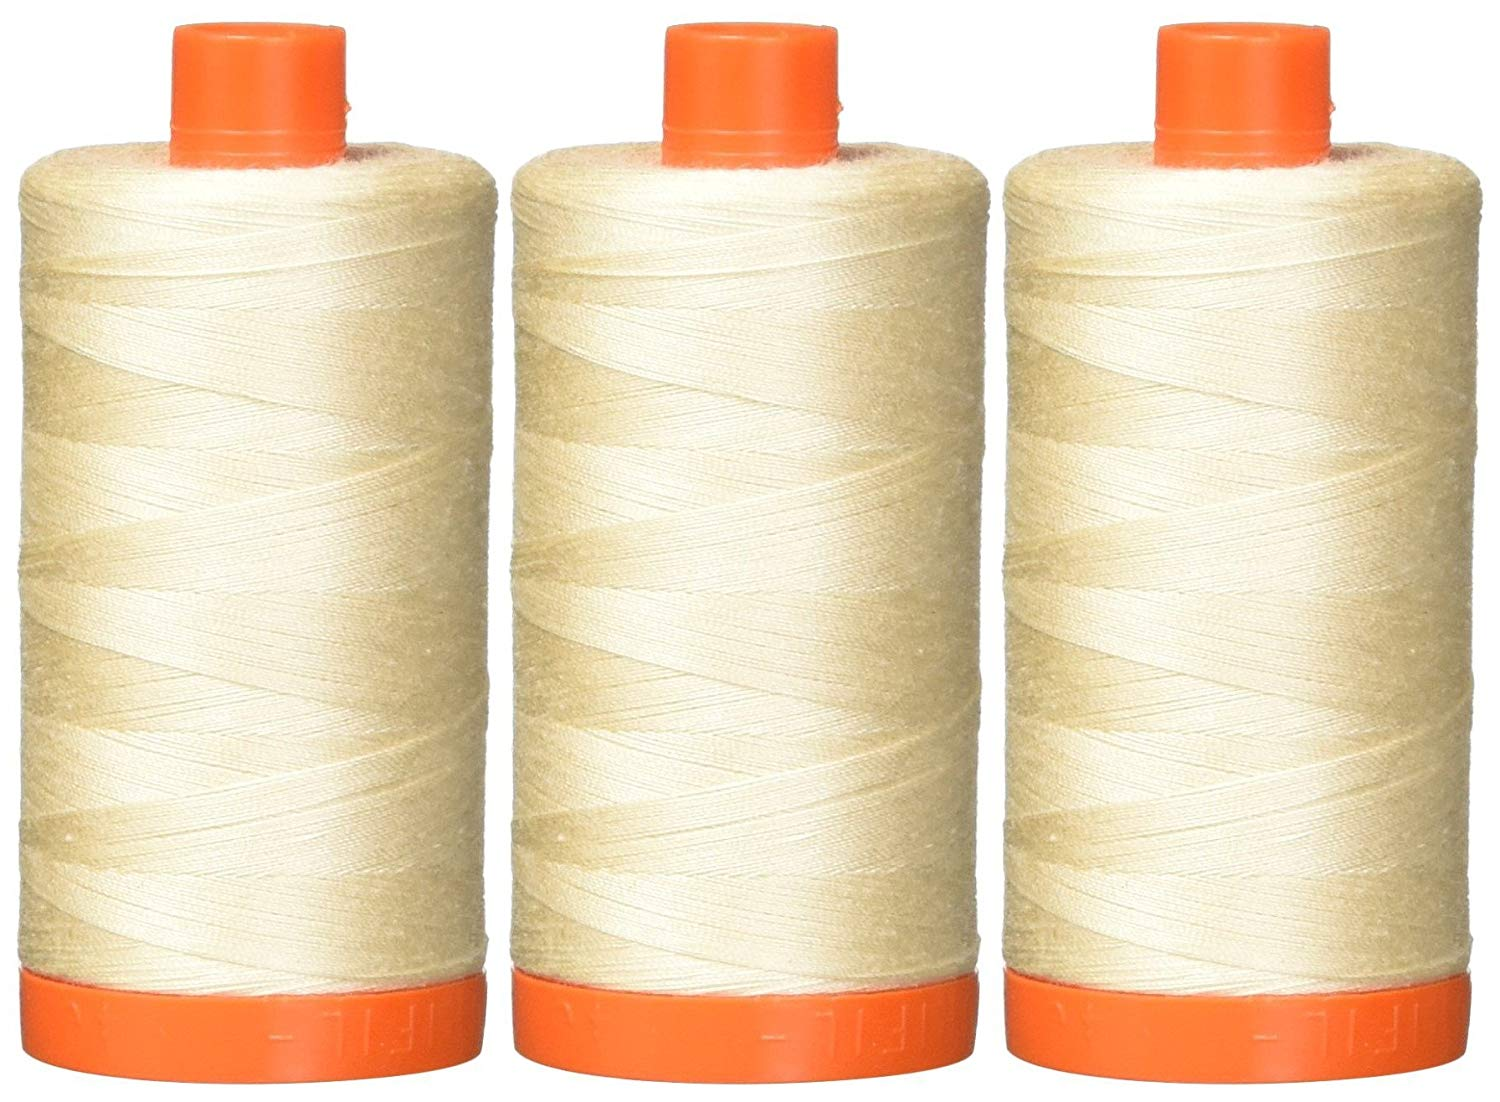 Aurifil Mako 50wt Cotton Thread - Light Sand (2000) - 3-pack